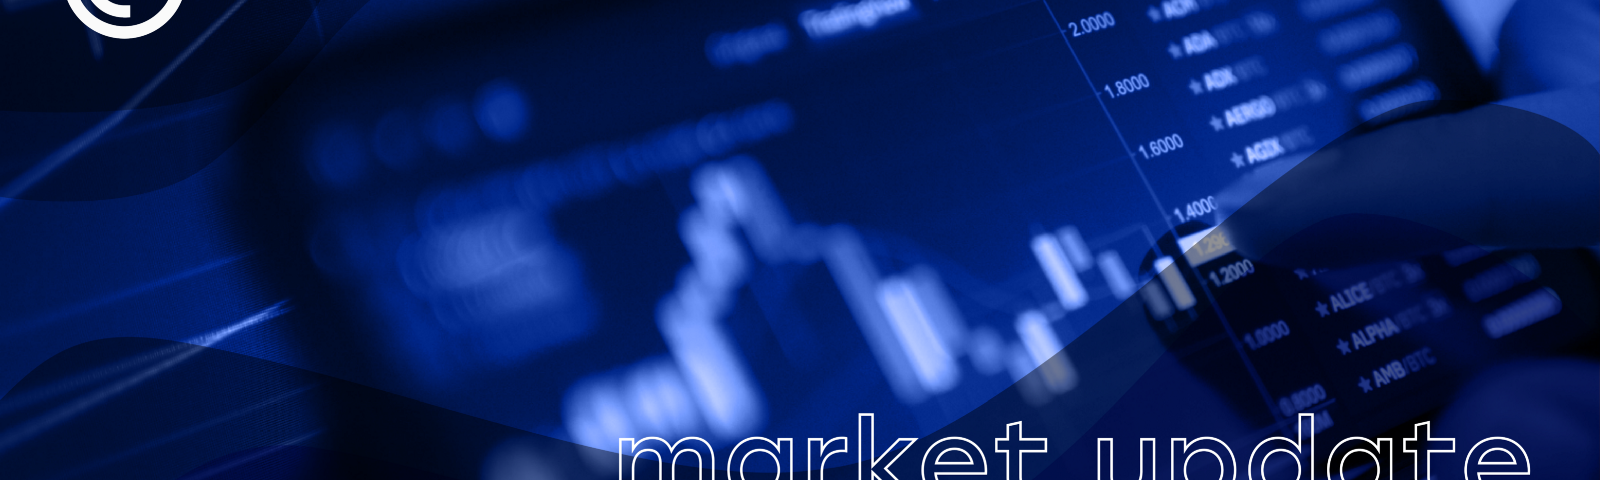 NFT market update with insights and highlights.